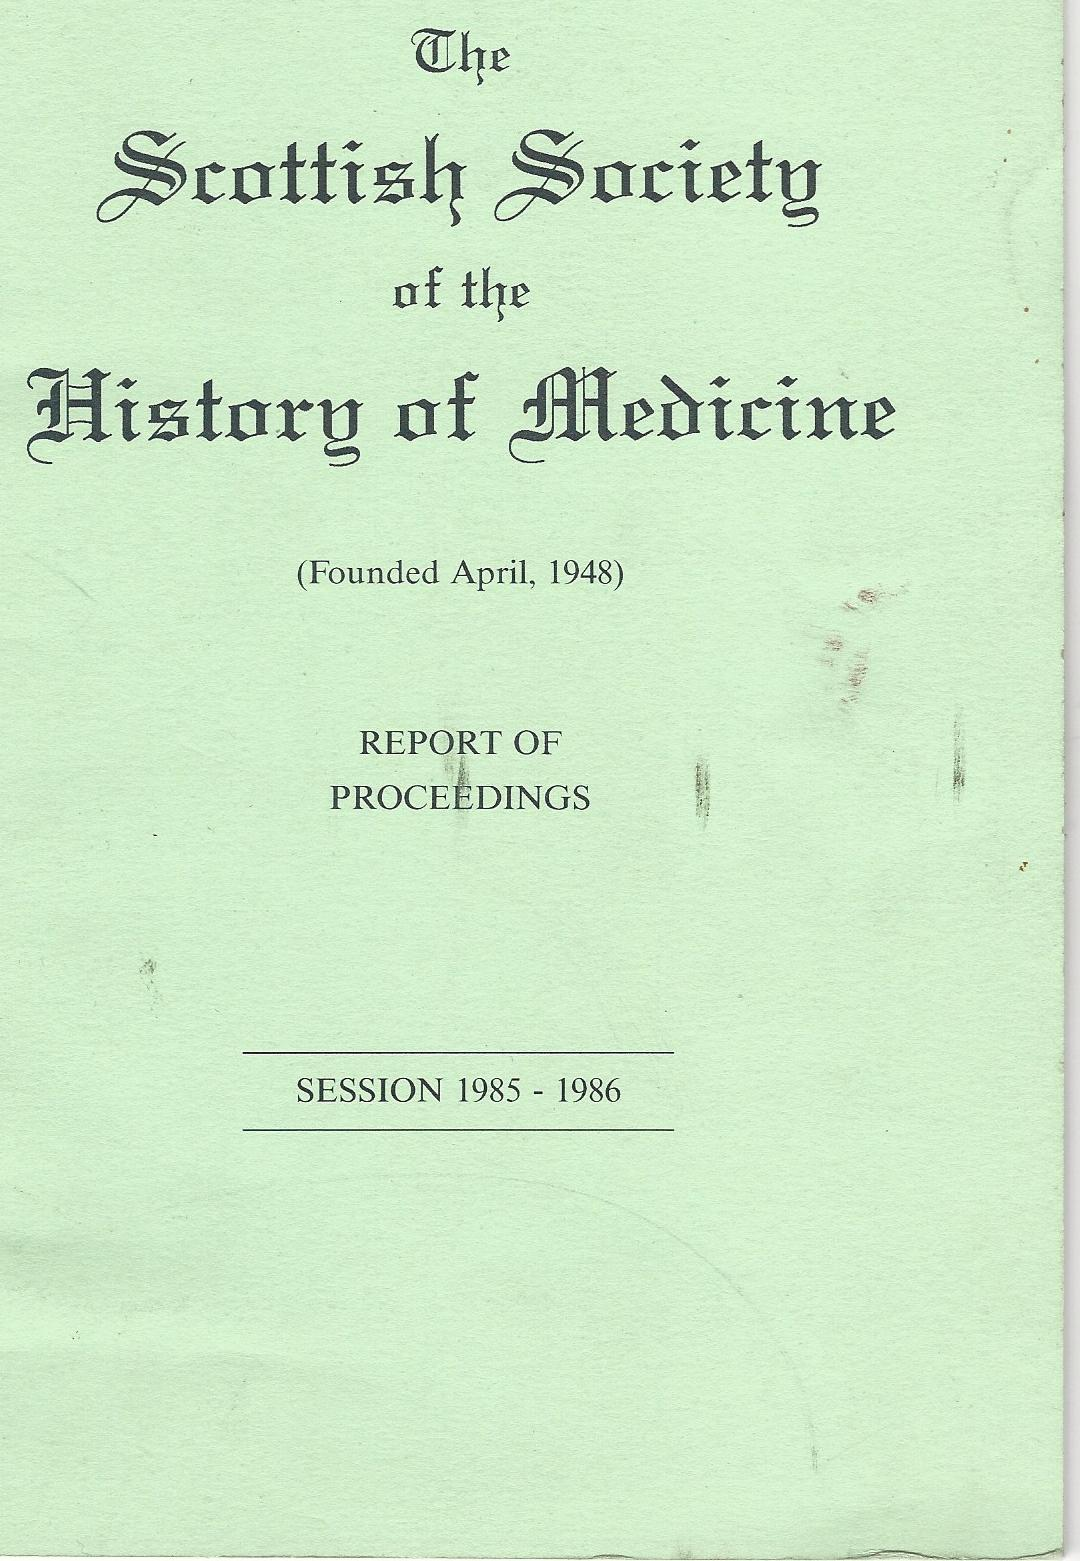 Image for The Scottish Society of the History of Medicine. Report of Proceedings. Session 1985 - 1986.